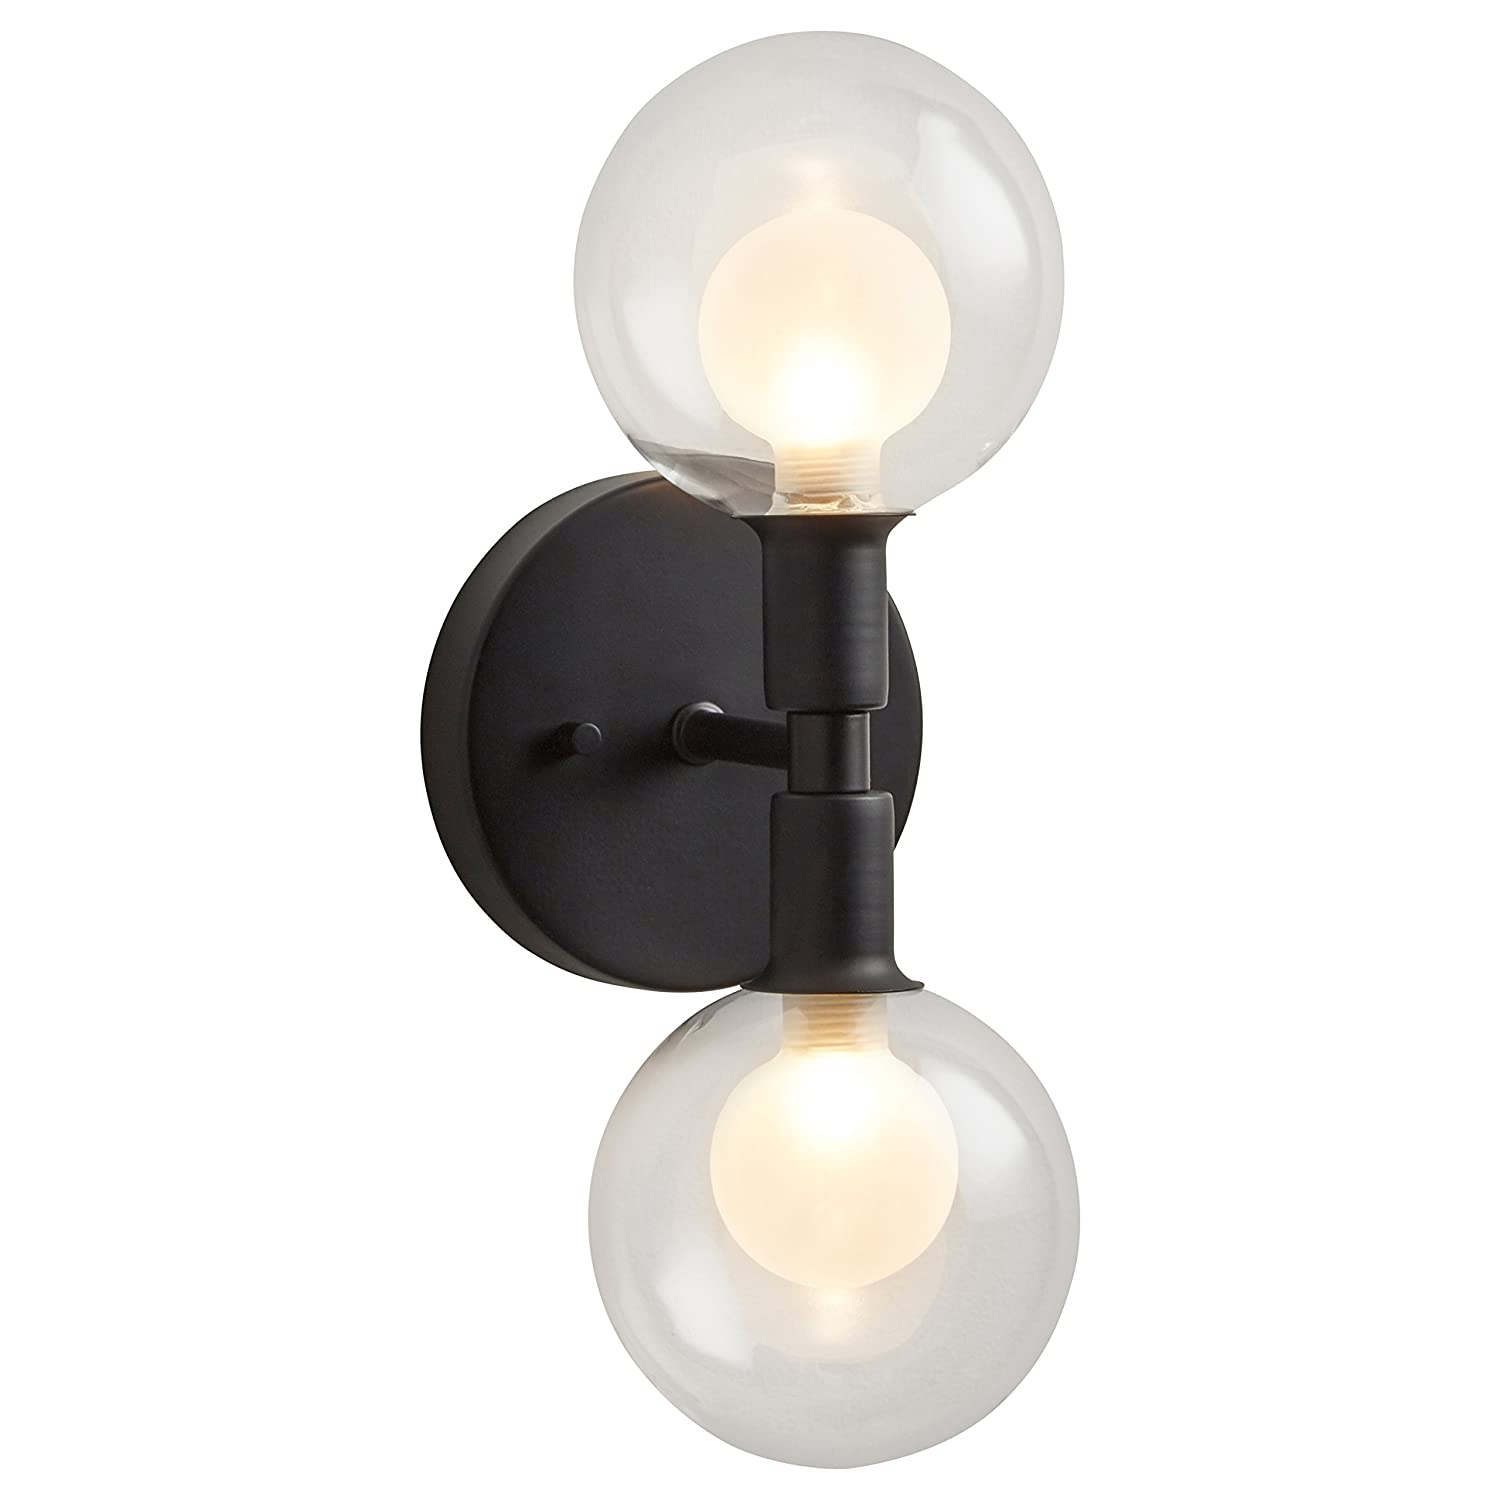 40.5 x 14 x 6.75 Inches 6-48 Inch Cord Rivet Mid-Century Modern Glass Globe Ceiling Pendant Chandelier With 6 Light Bulbs Gold